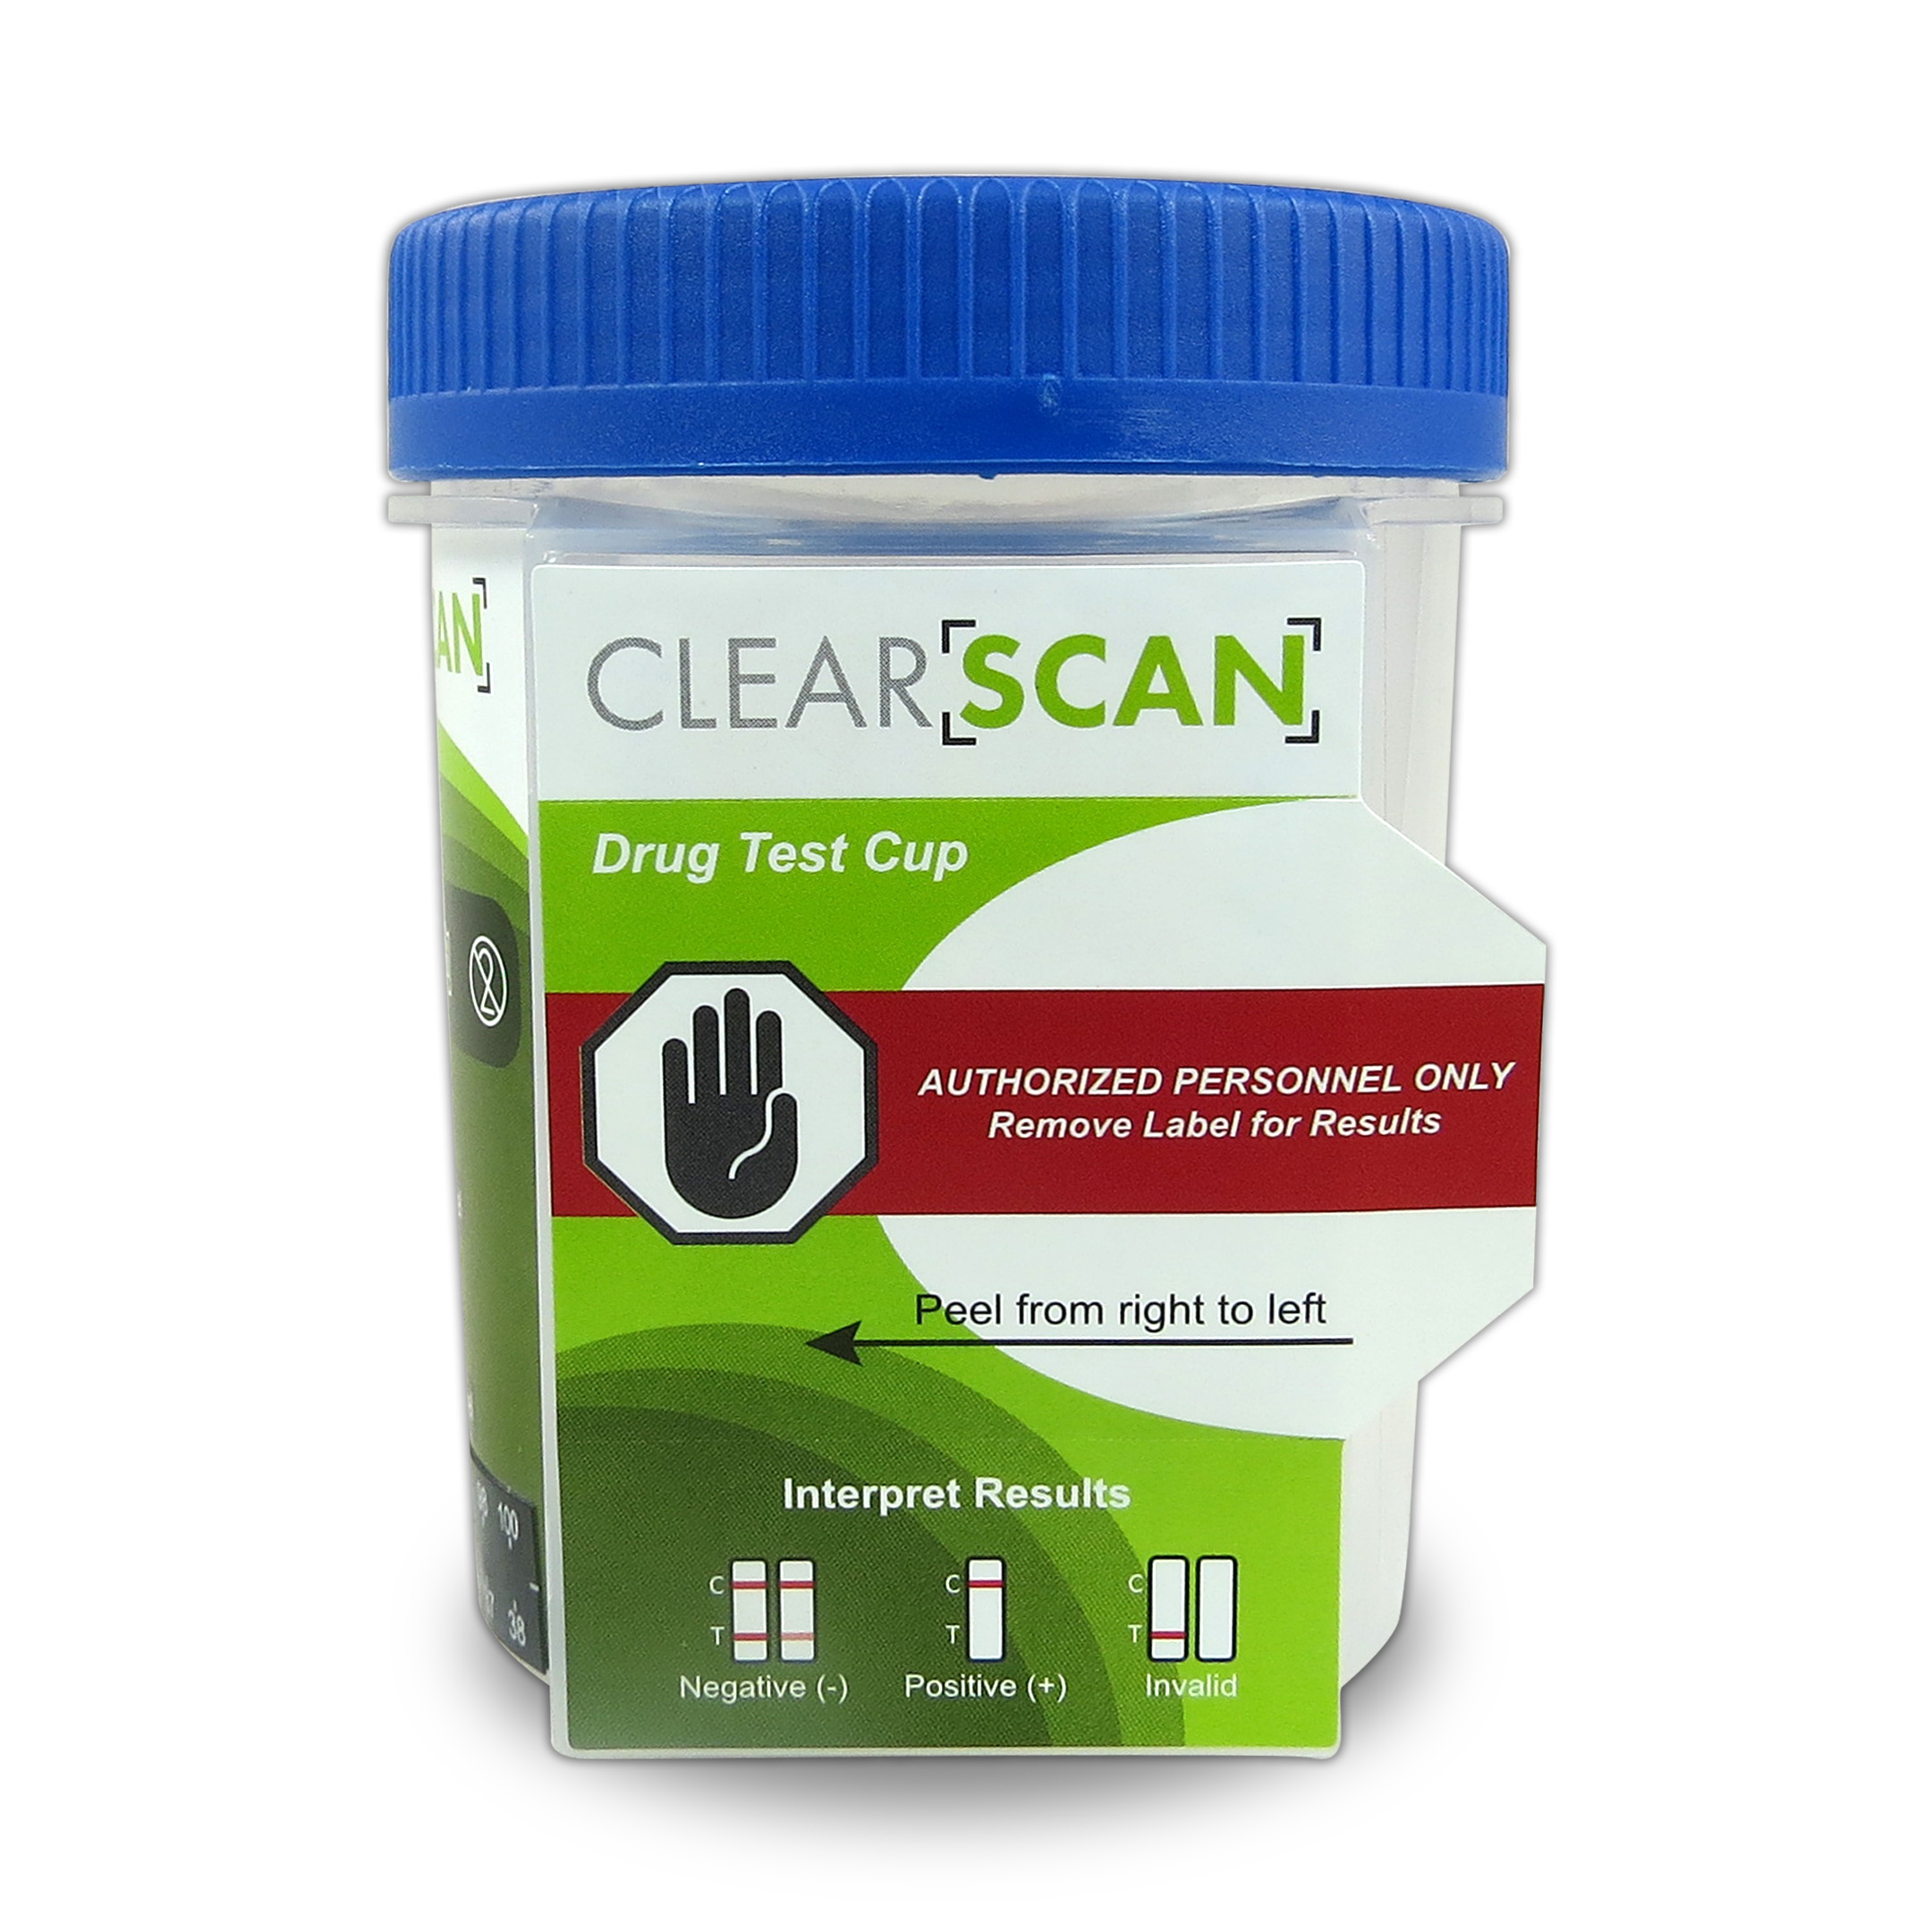 Five Panel Clear Scan Drug Test Cup (CLIA Waived)